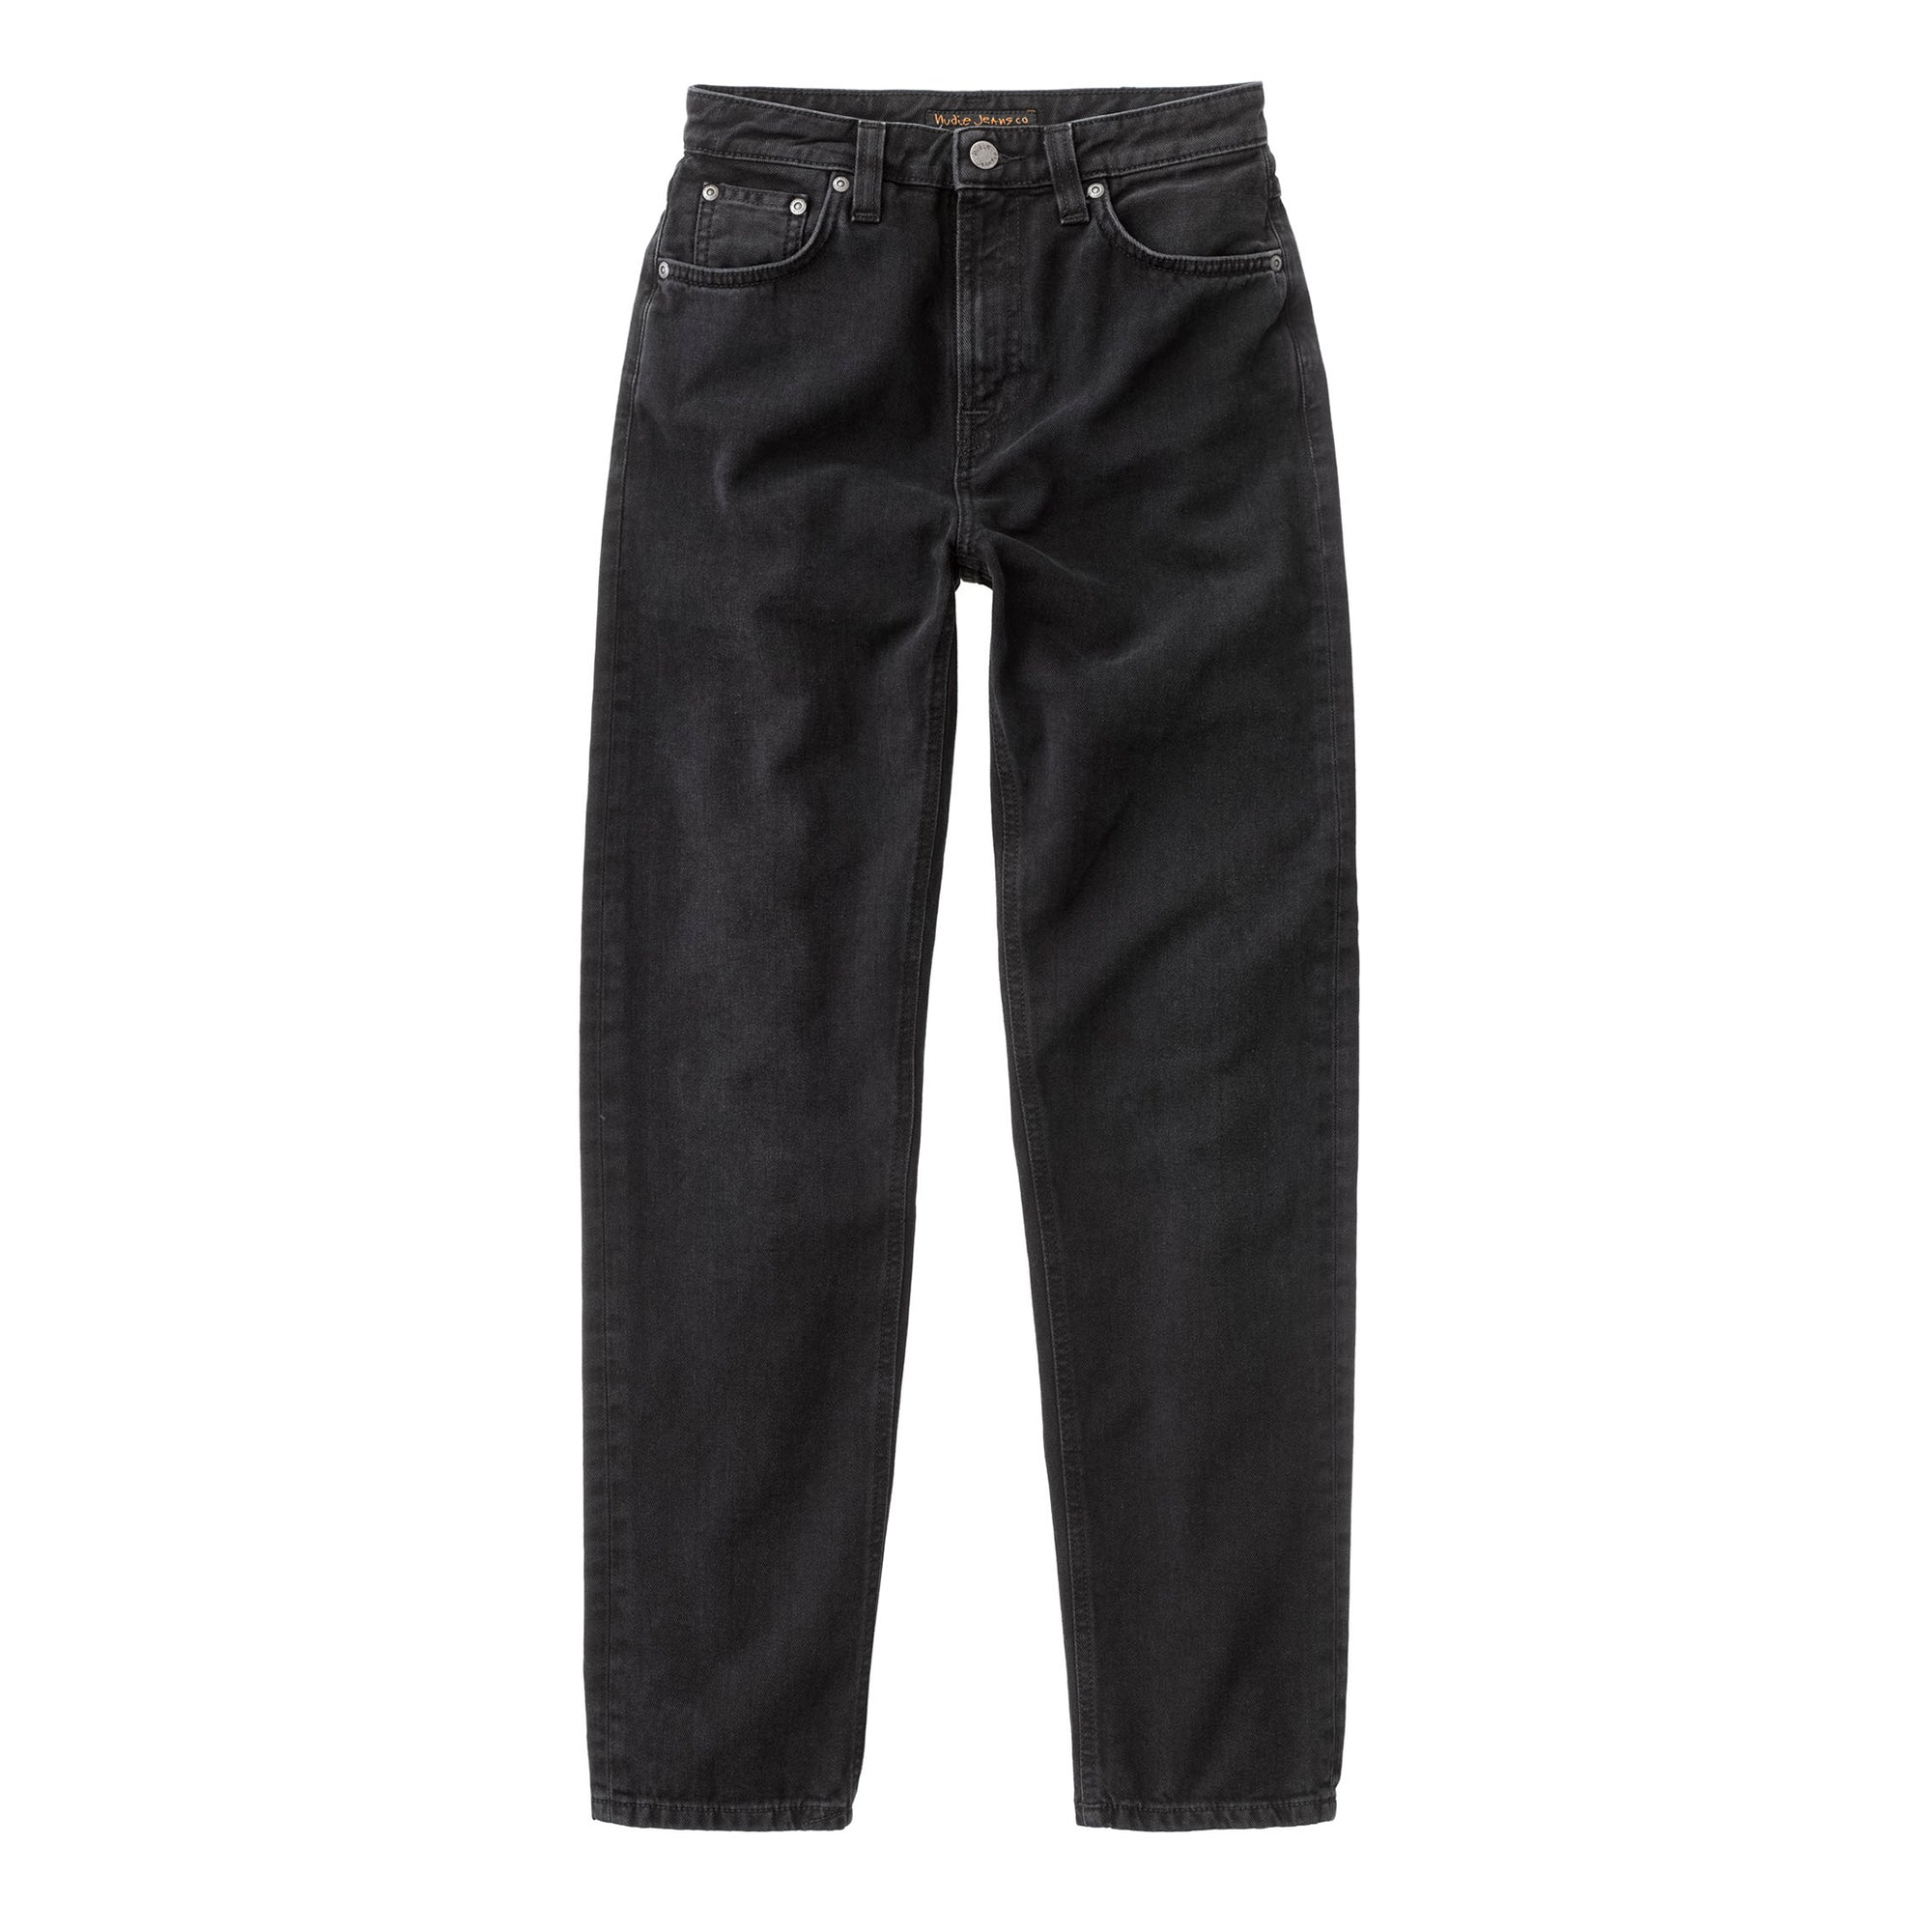 Nudie Jeans Womens Breezy Brit: Black Worn - The Union Project